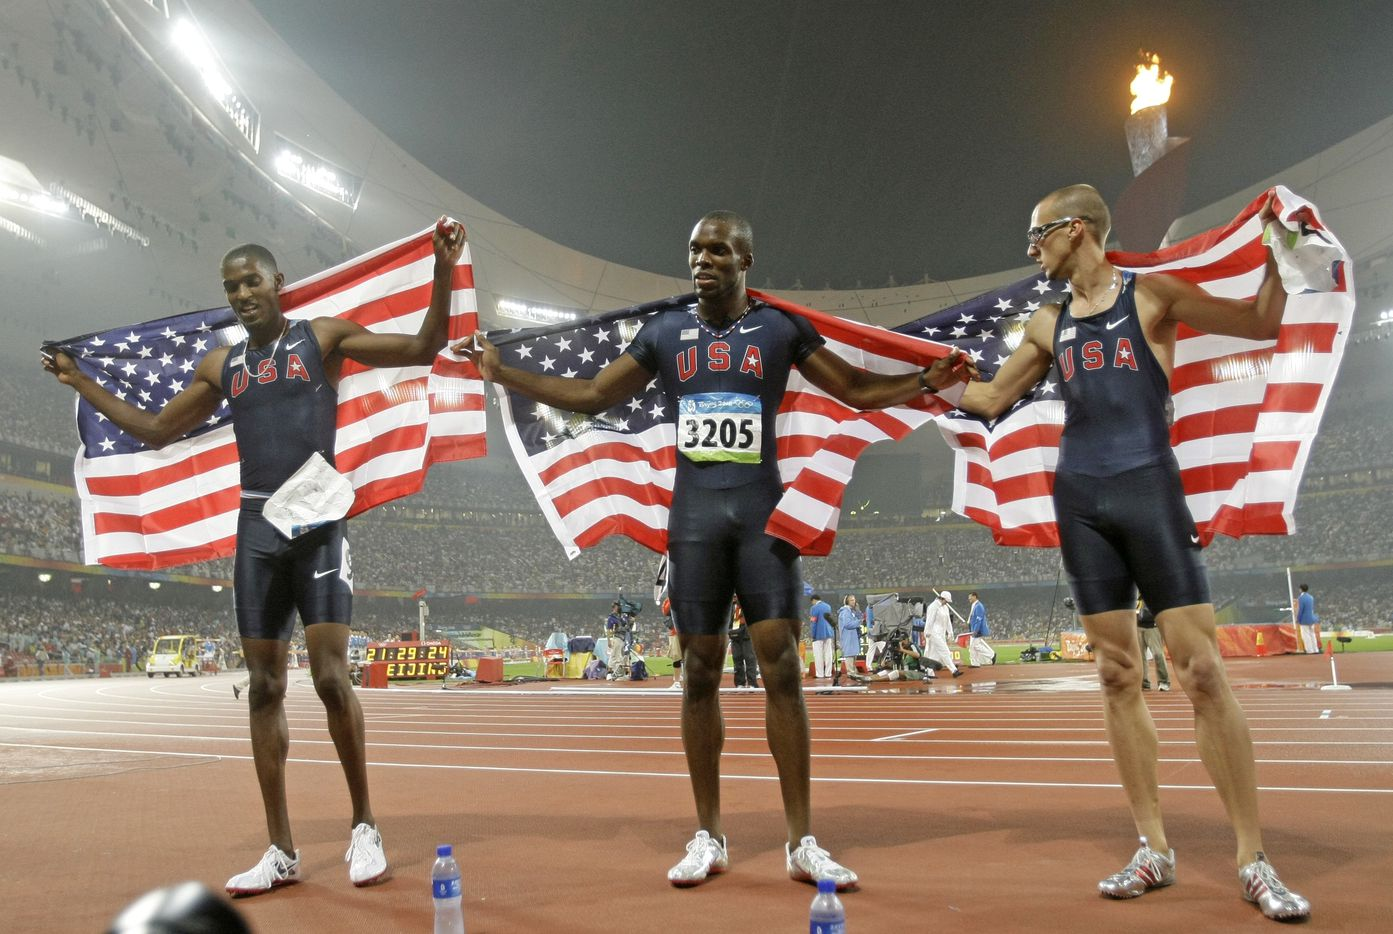 2008 Beijing Olympics: USA runners sweep the Men's 400 meters at the National Stadium  in Beijing, China Thursday August 21, 2008. From left, David Neville (bronze), LaShawn Merritt (gold), and Jeremy Wariner (silver).